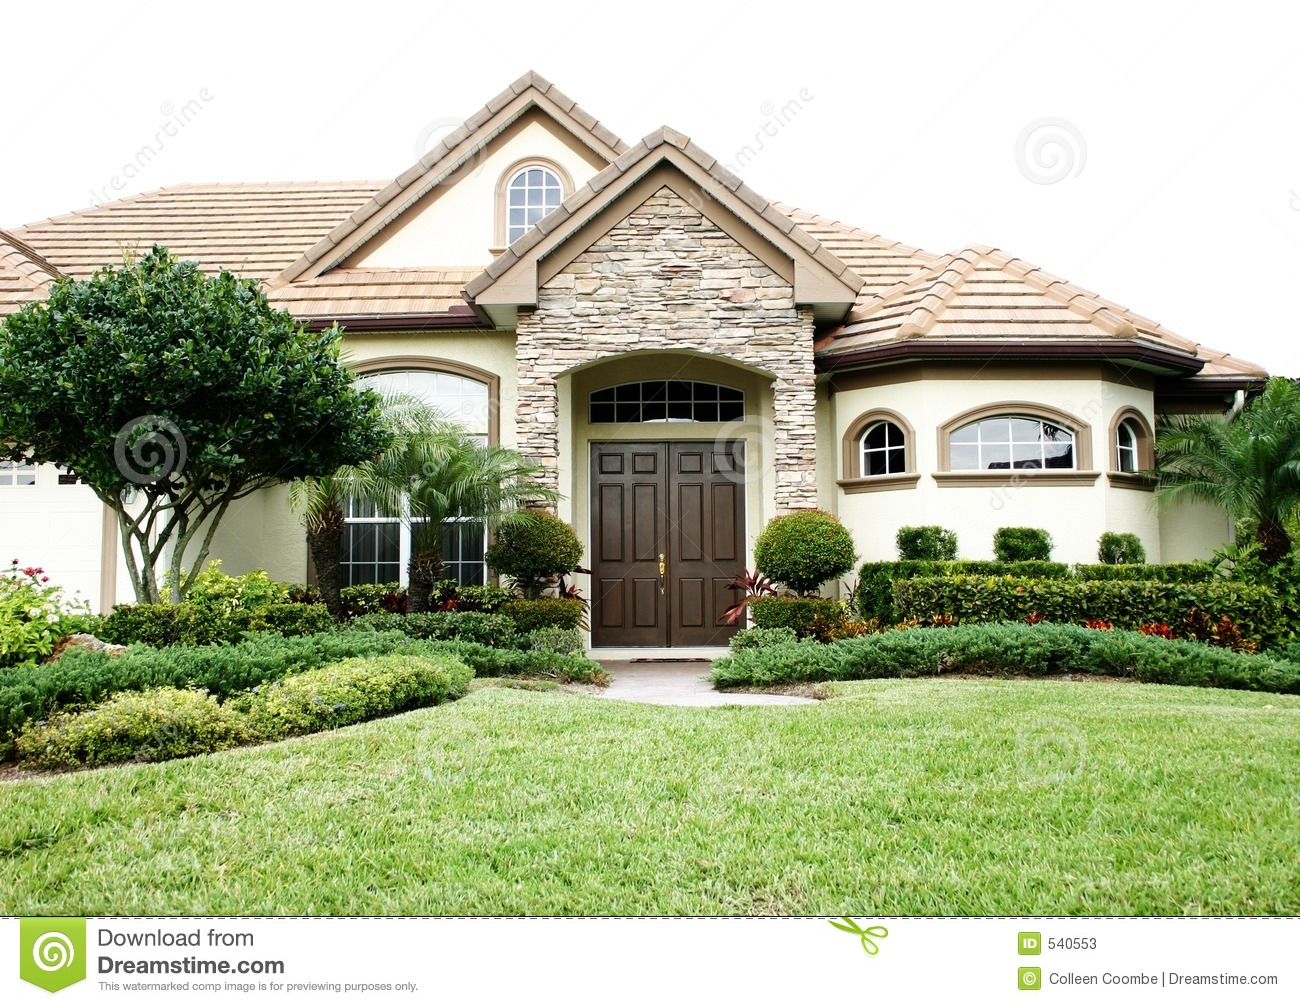 English Style Home Stock Photos Image 540553